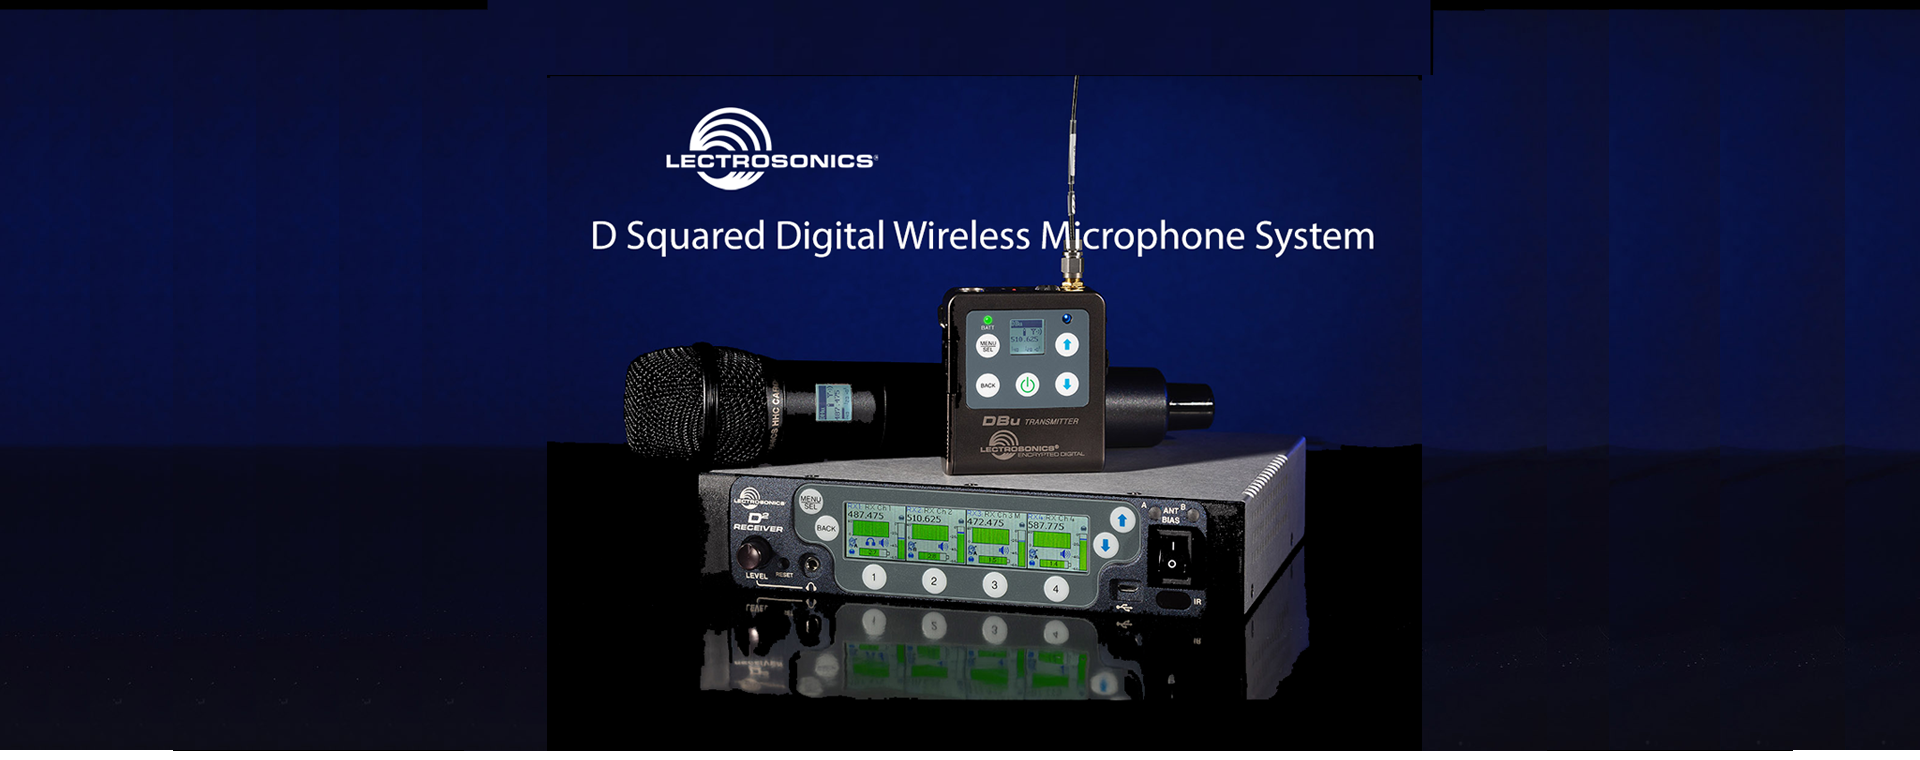 Lectrosonics Introduces the D Squared Digital Wireless